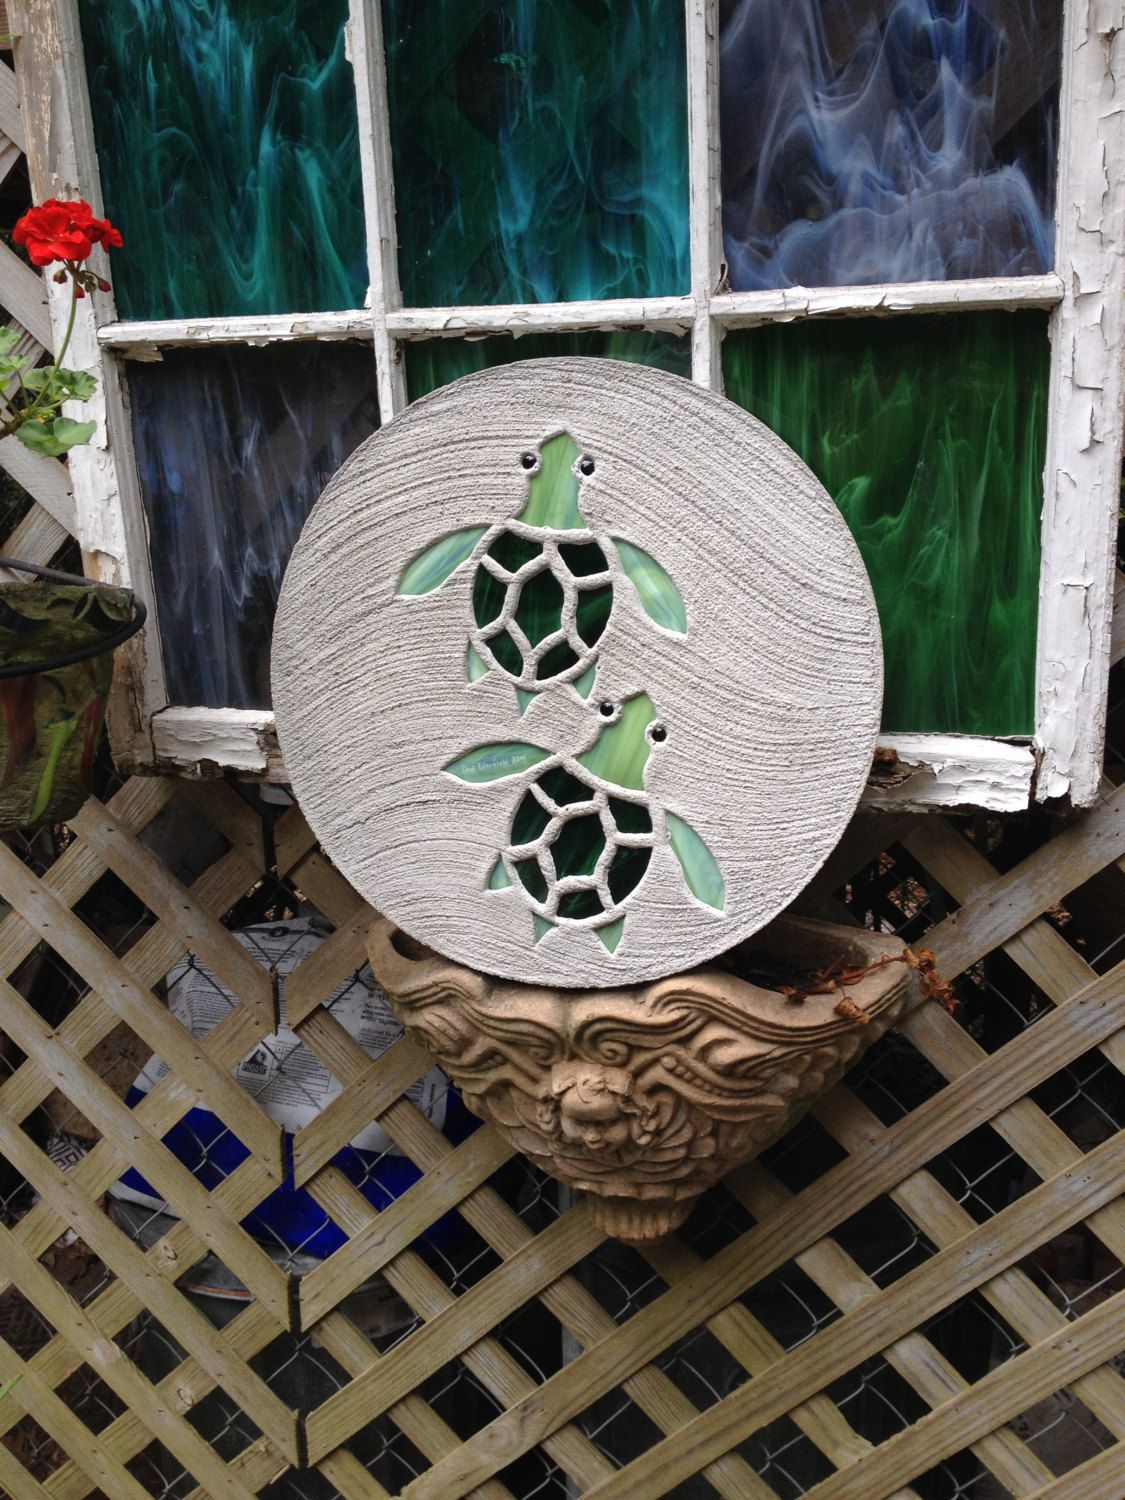 Baby Sea Turtles Stepping Stone 18 Inch Diameter Concrete Stained Gl Mosaic Garden Turtle Yard Art Ornament Decor By